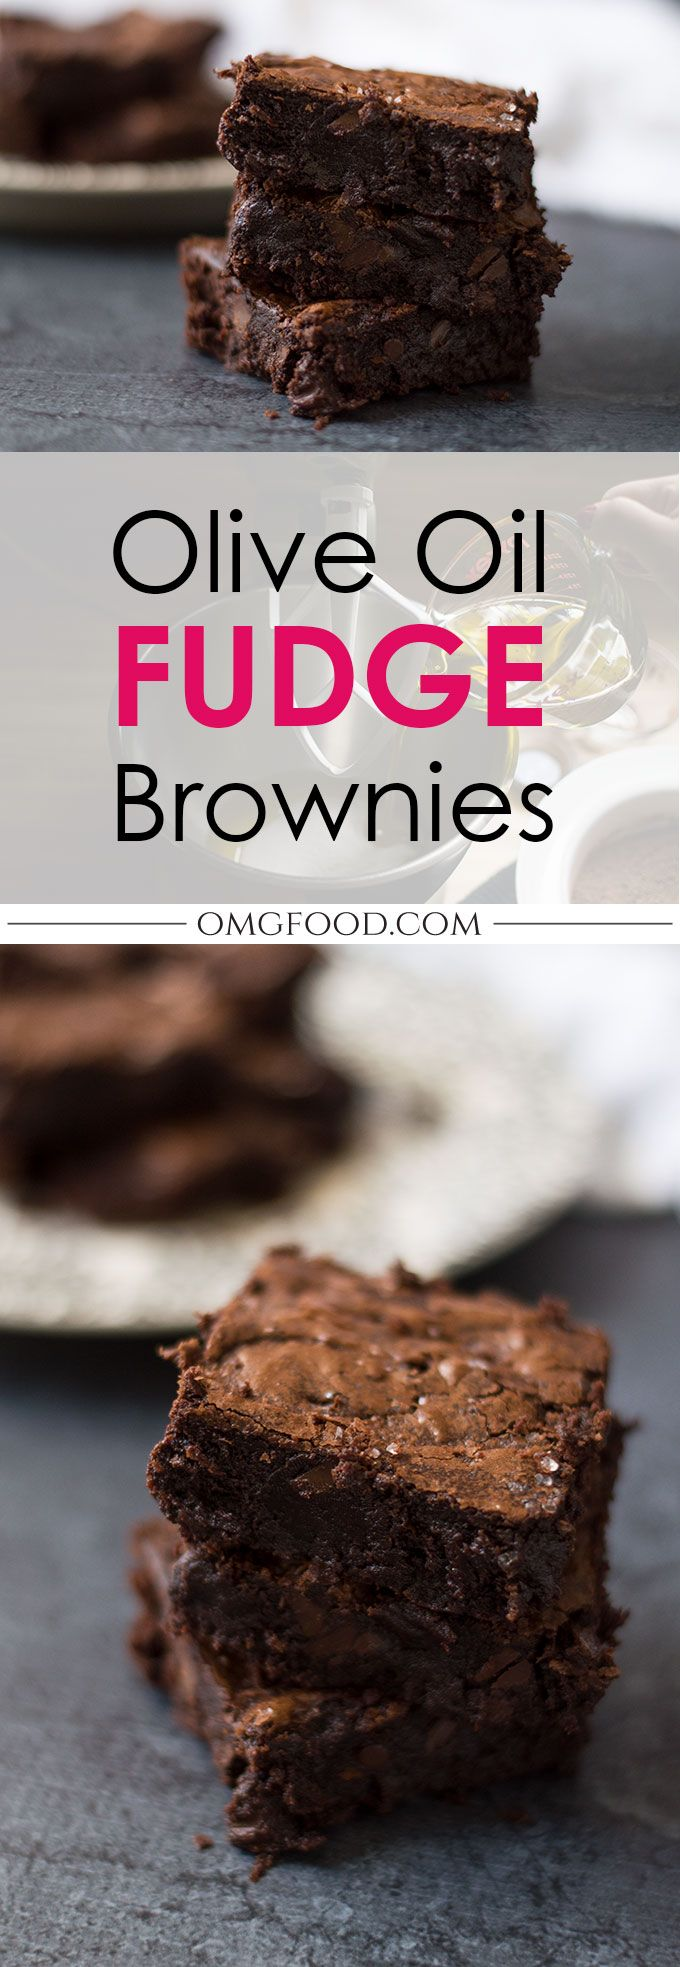 Virgilliant Greek Extra Virgin Olive Oil just came across to this amazing recipe:Olive Oil Fudge Brownies | omgfood.com